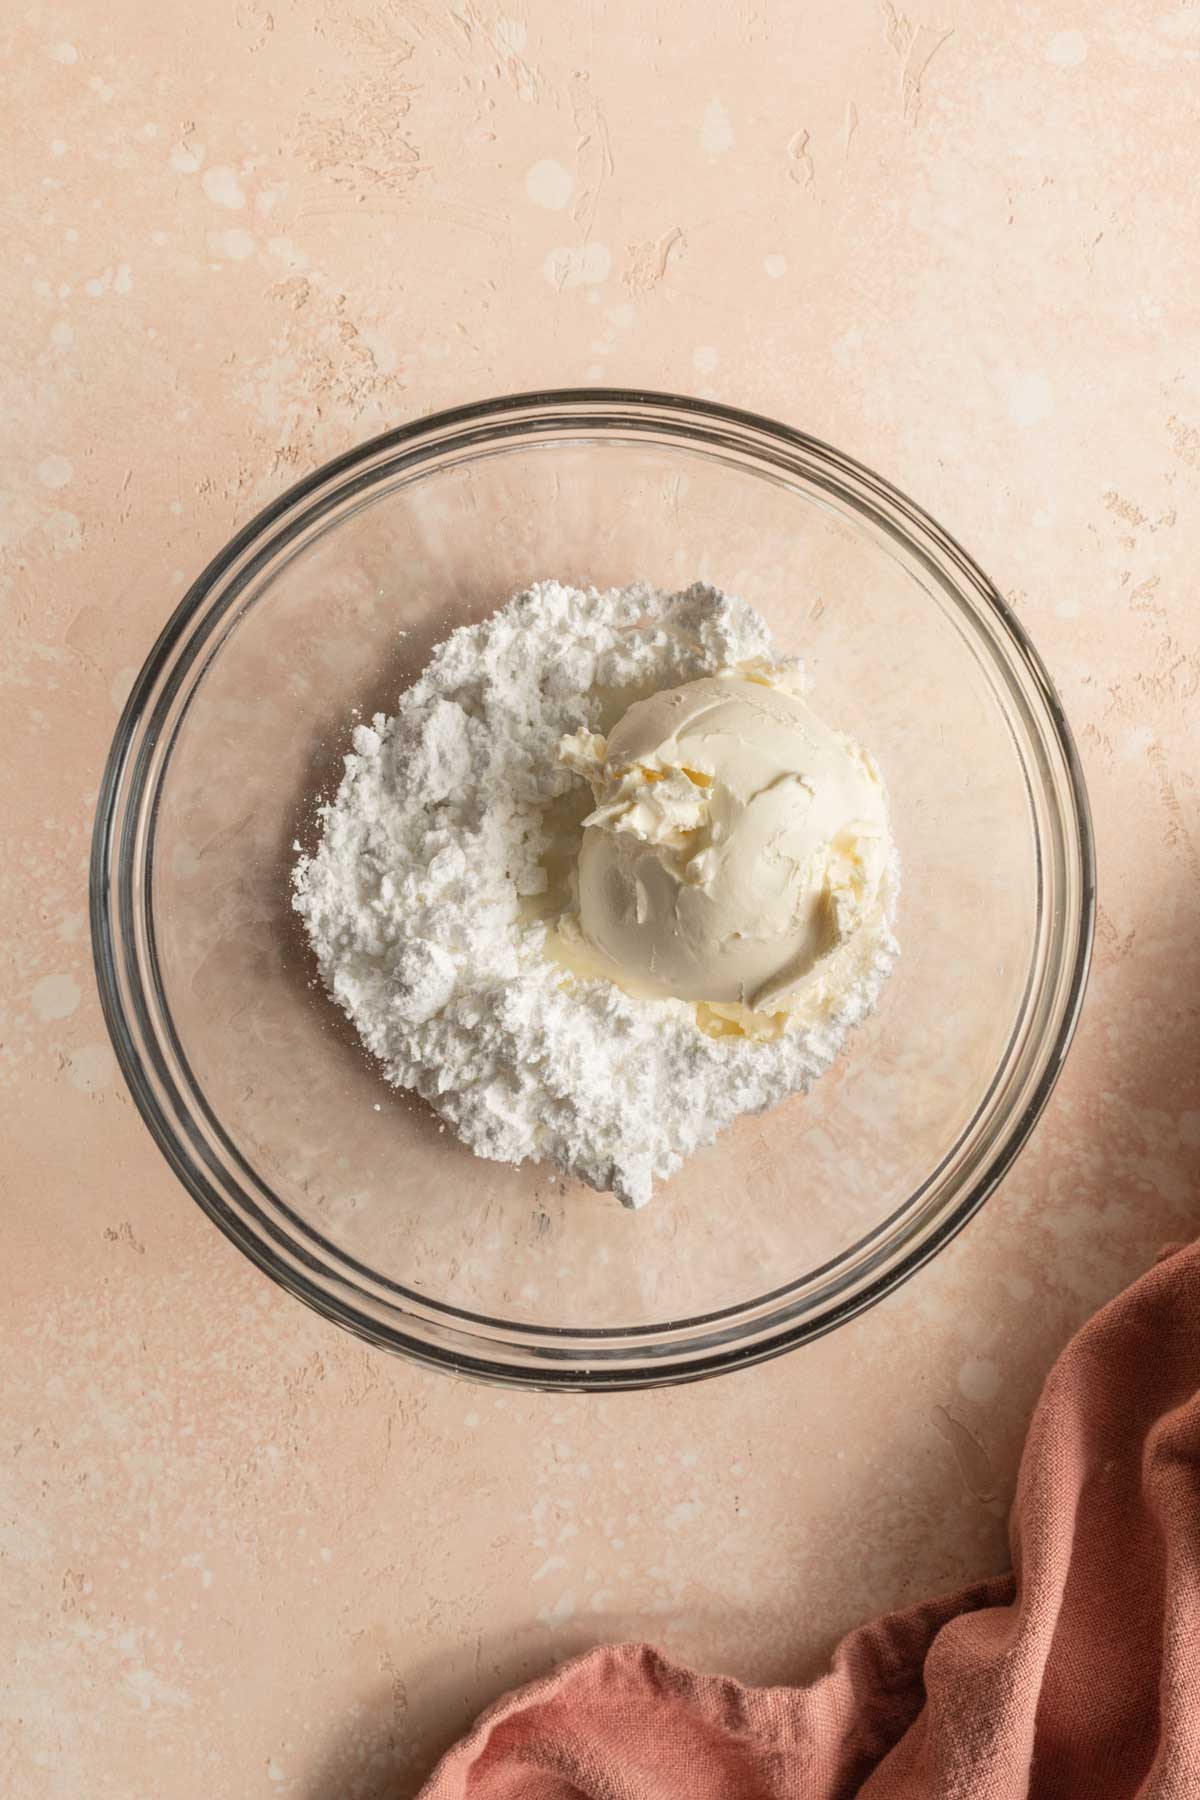 Powdered sugar and cream cheese in a glass bowl to make the frosting.